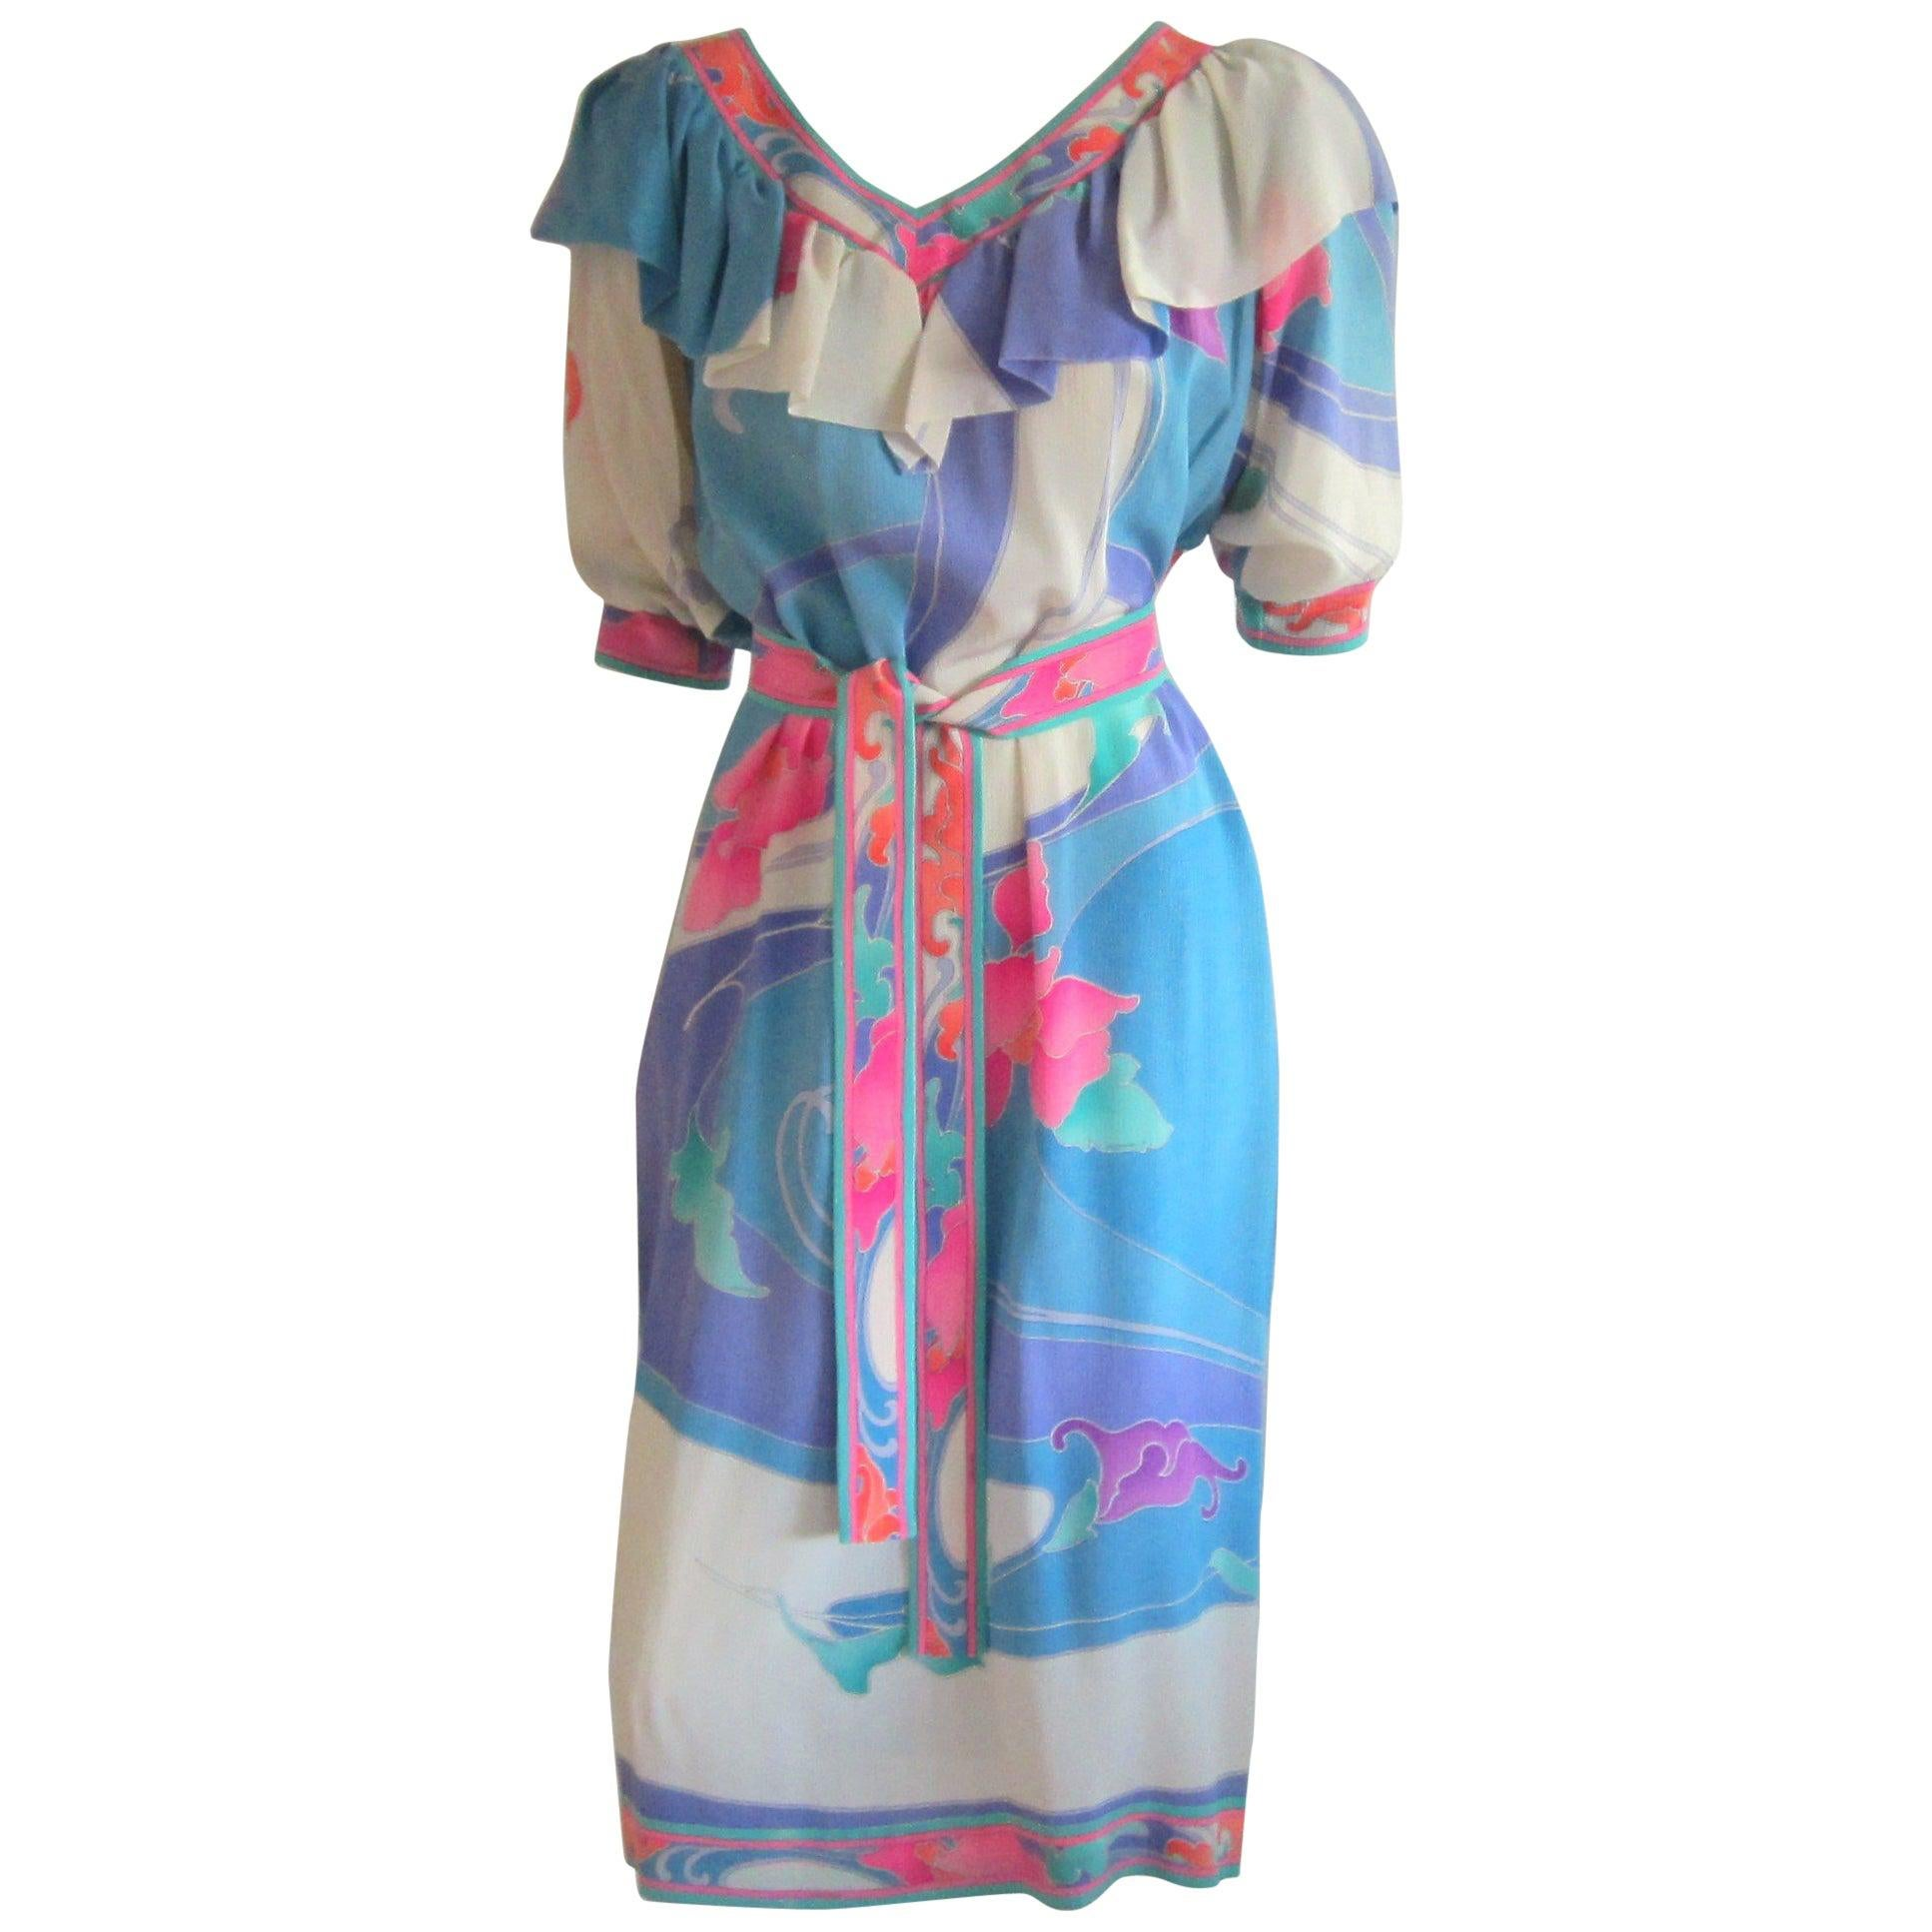 Leonard Paris Floral Print Shift Style Dress Made in France 1980s